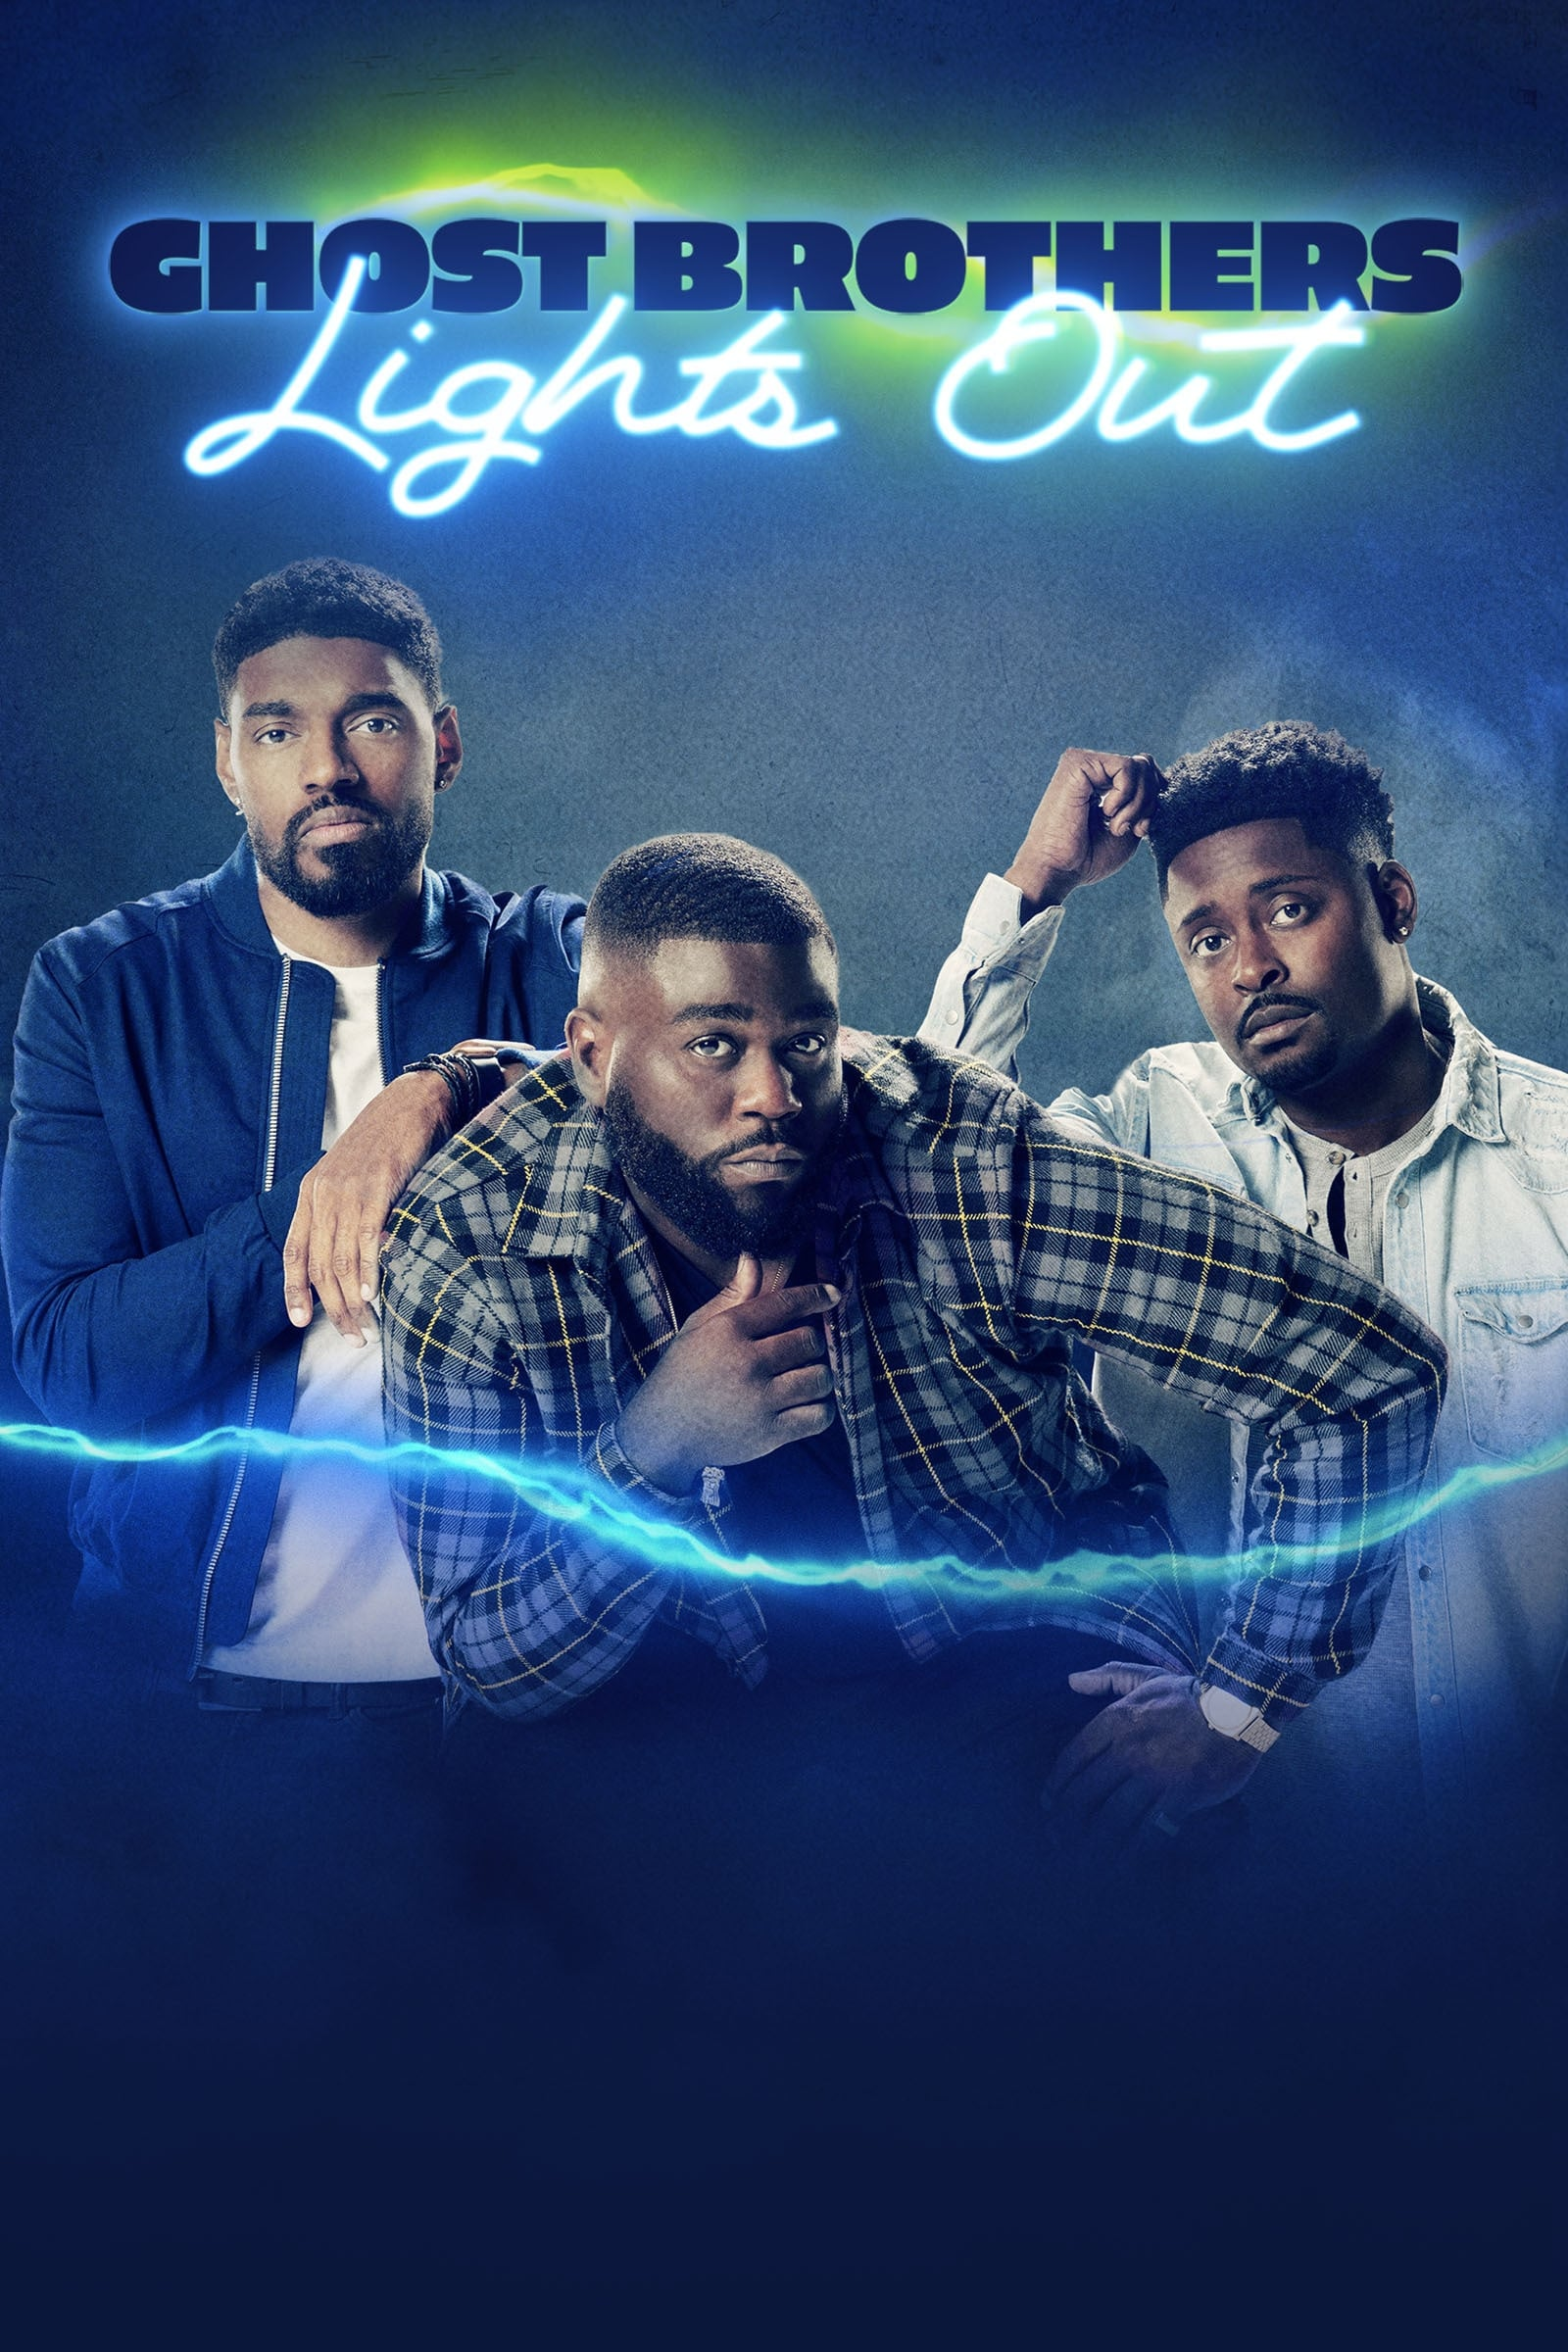 Ghost Brothers: Lights Out TV Shows About Ghost